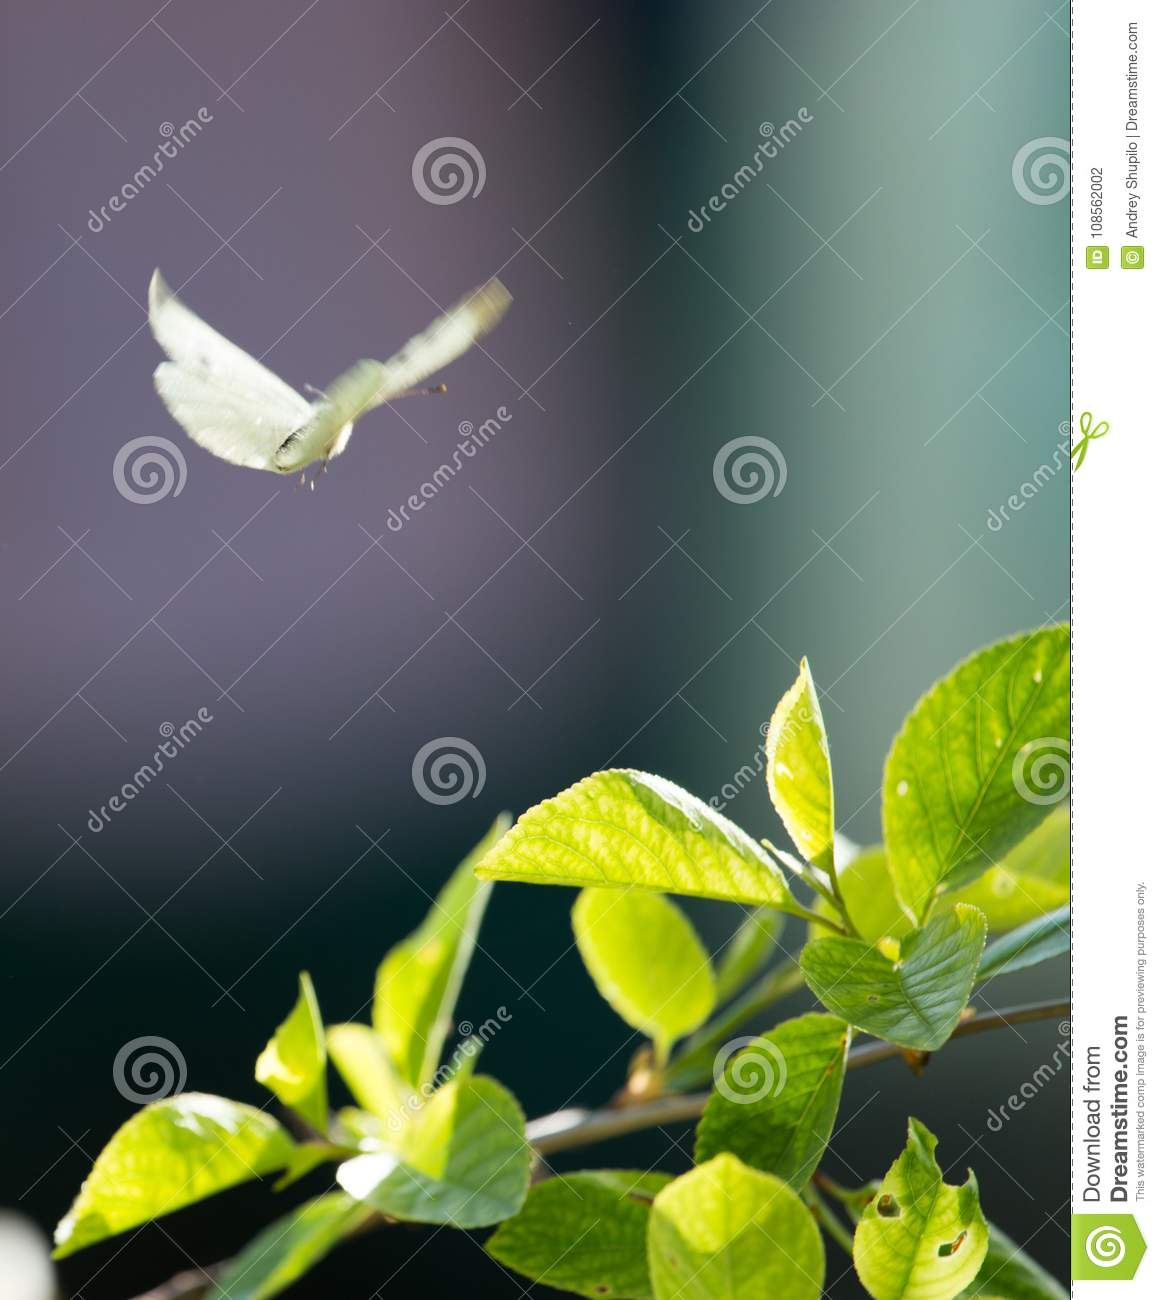 Butterfly in nature